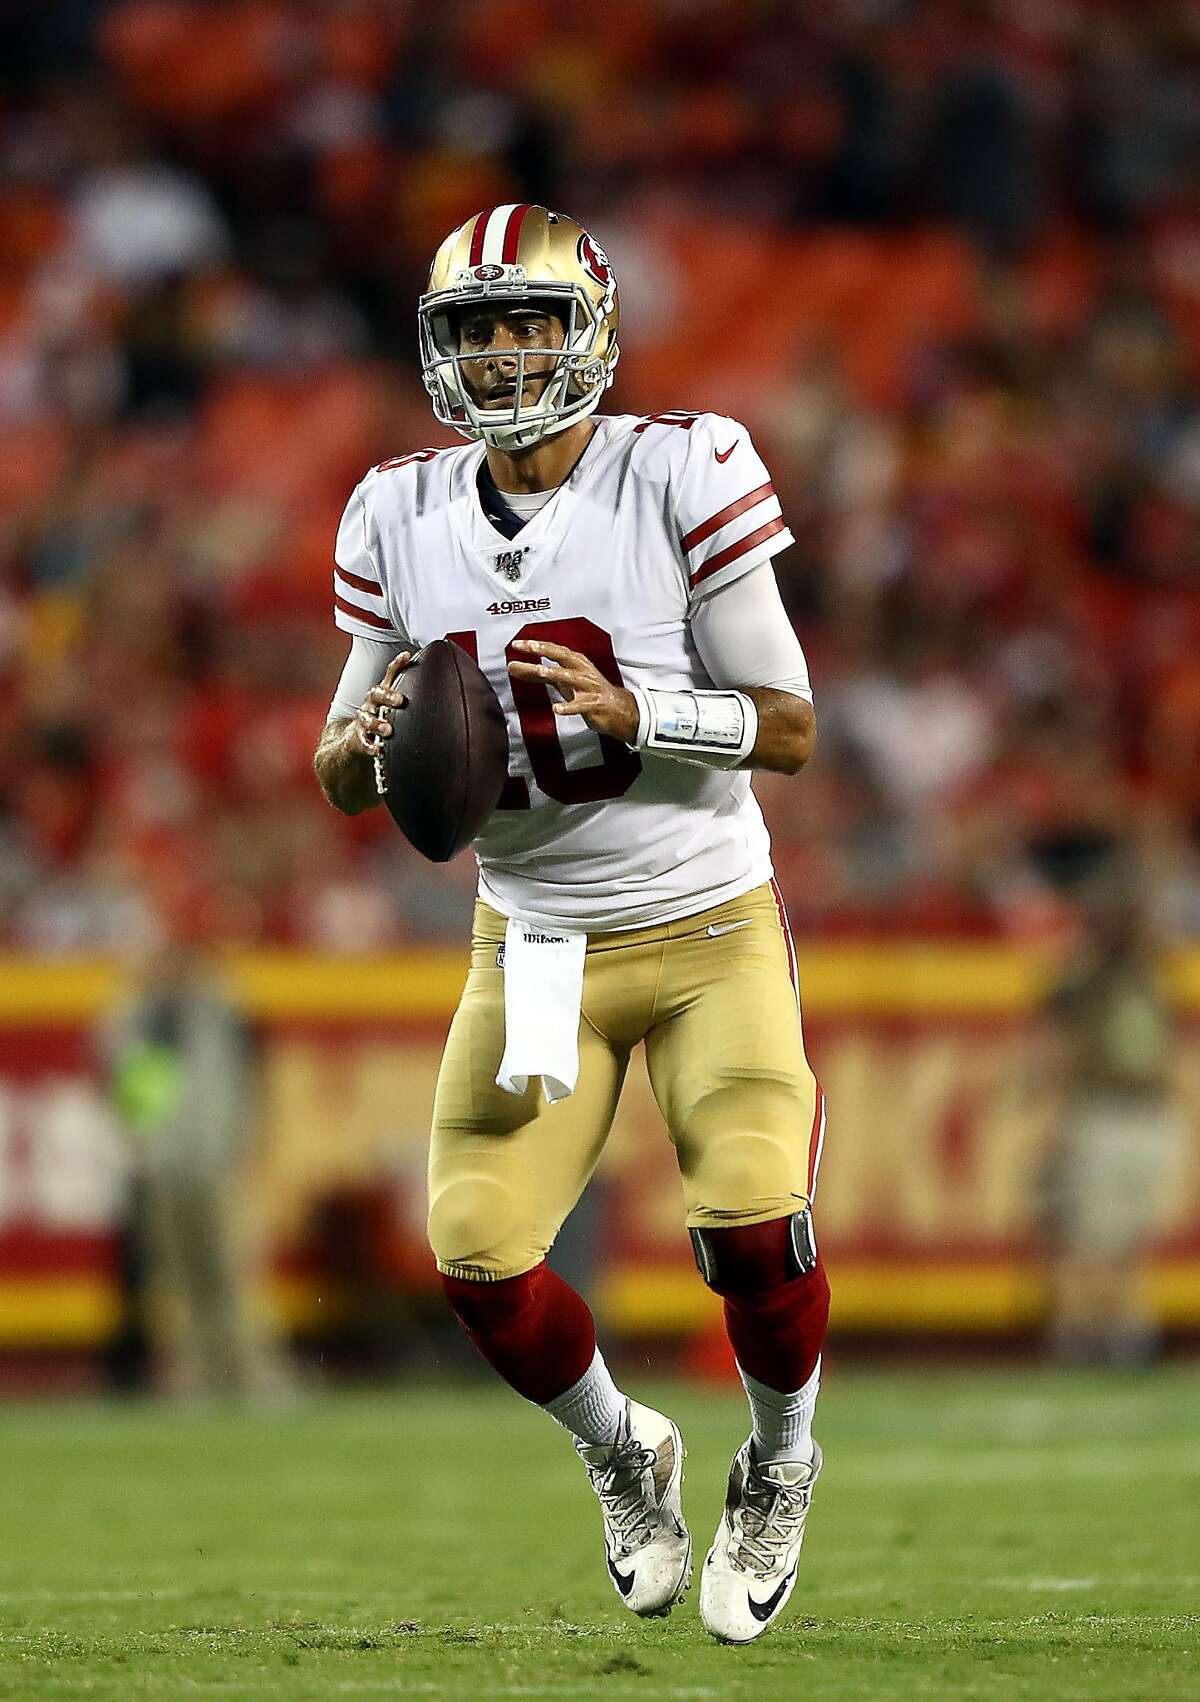 Quarterback Jimmy Garoppolo #10 of the San Francisco 49ers looks to pass during the preseason game against the Kansas City Chiefs at Arrowhead Stadium on August 24, 2019 in Kansas City, Missouri. (Photo by Jamie Squire/Getty Images)